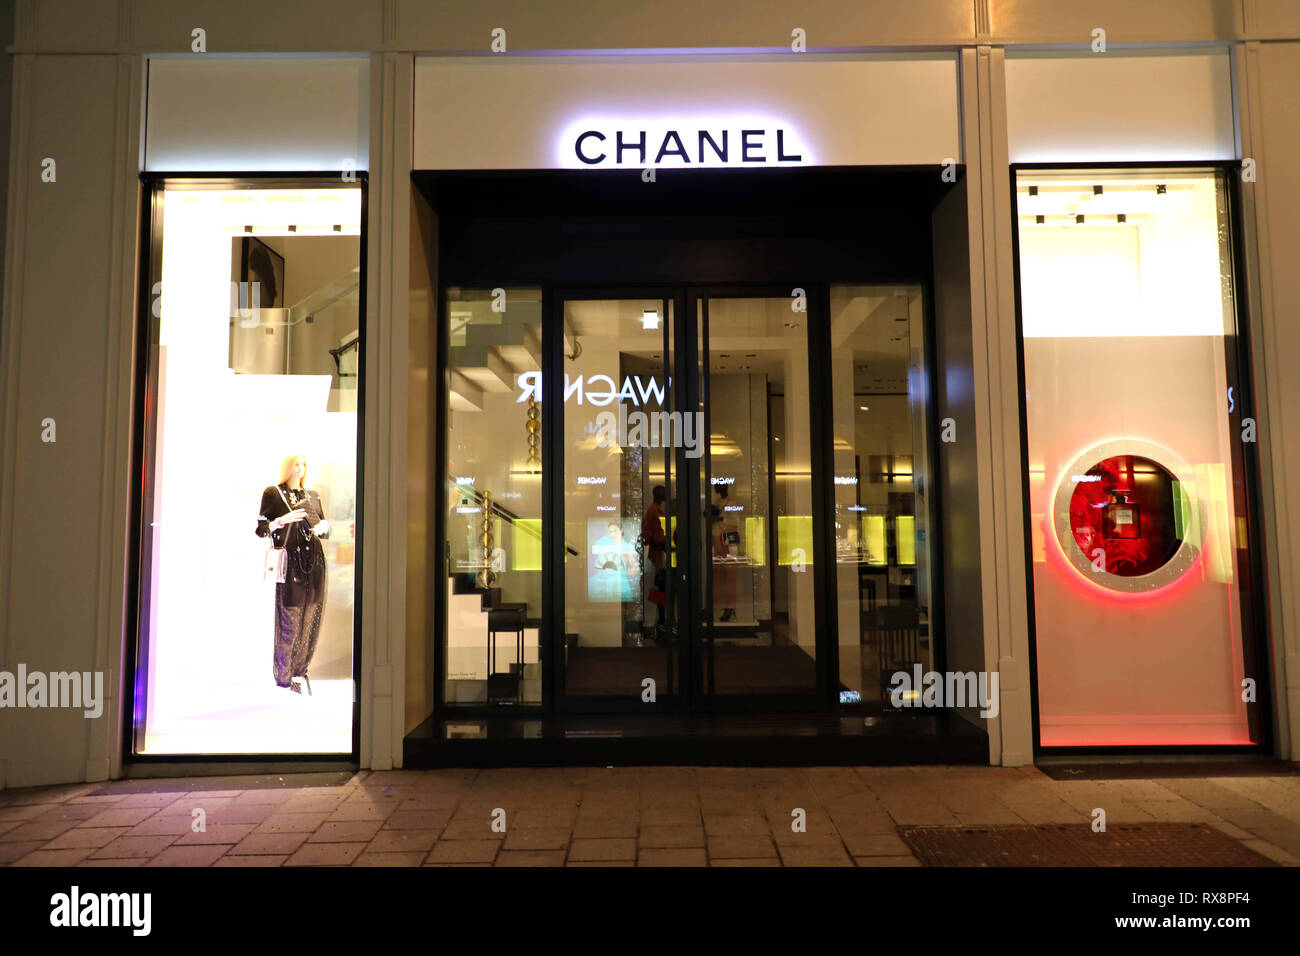 329d13390ed3 VIENNA, AUSTRIA - JANUARY 8, 2019: night view of Chanel store in Vienna